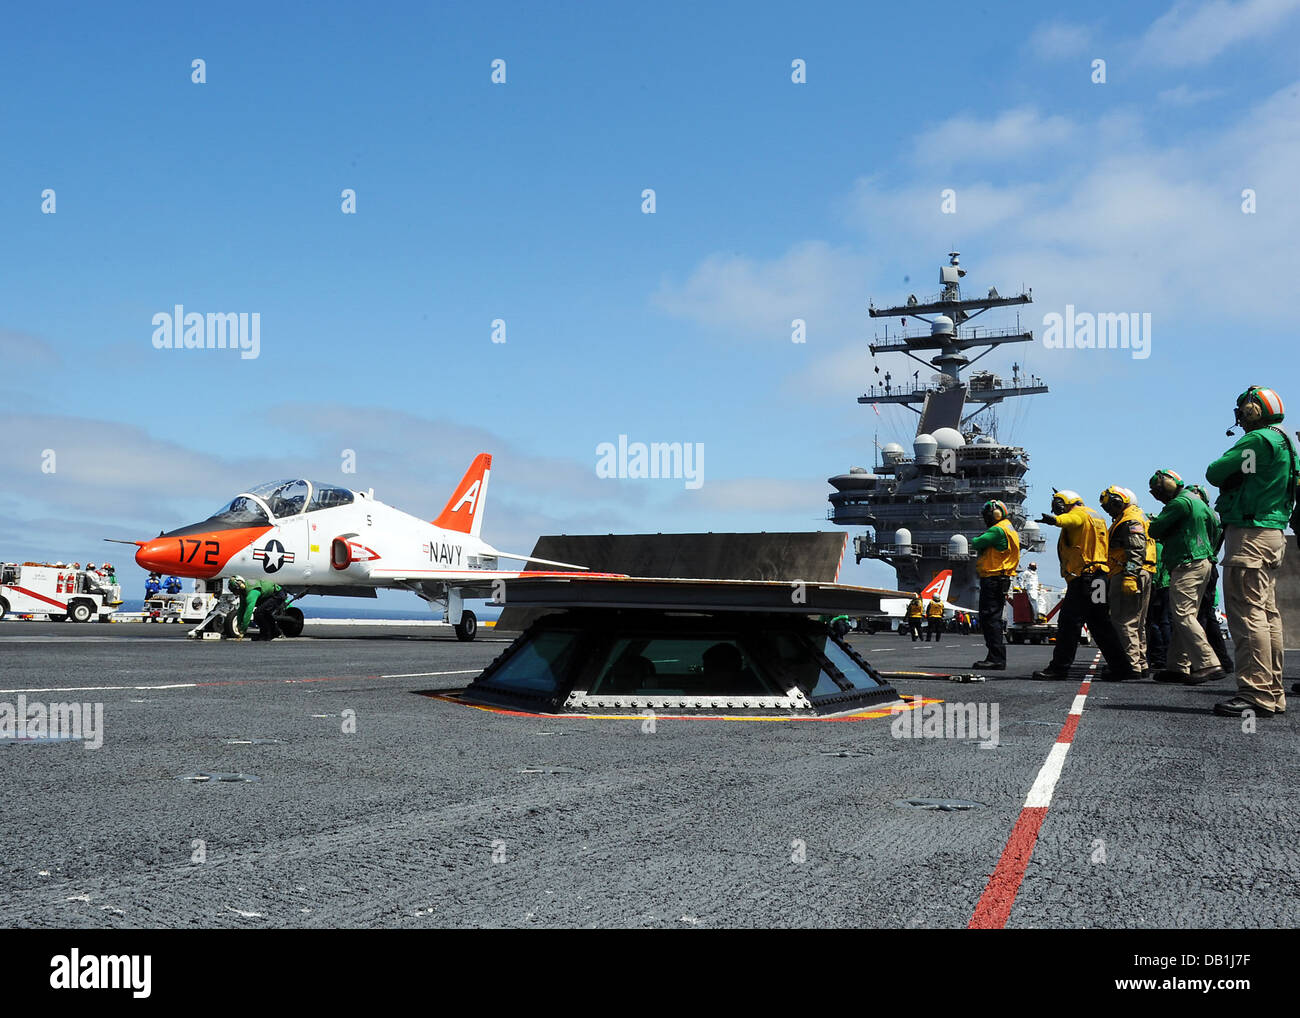 A T-45C Goshawk training aircraft from the Tigers of Training Wing 1 prepares to launch from the flight deck of - Stock Image